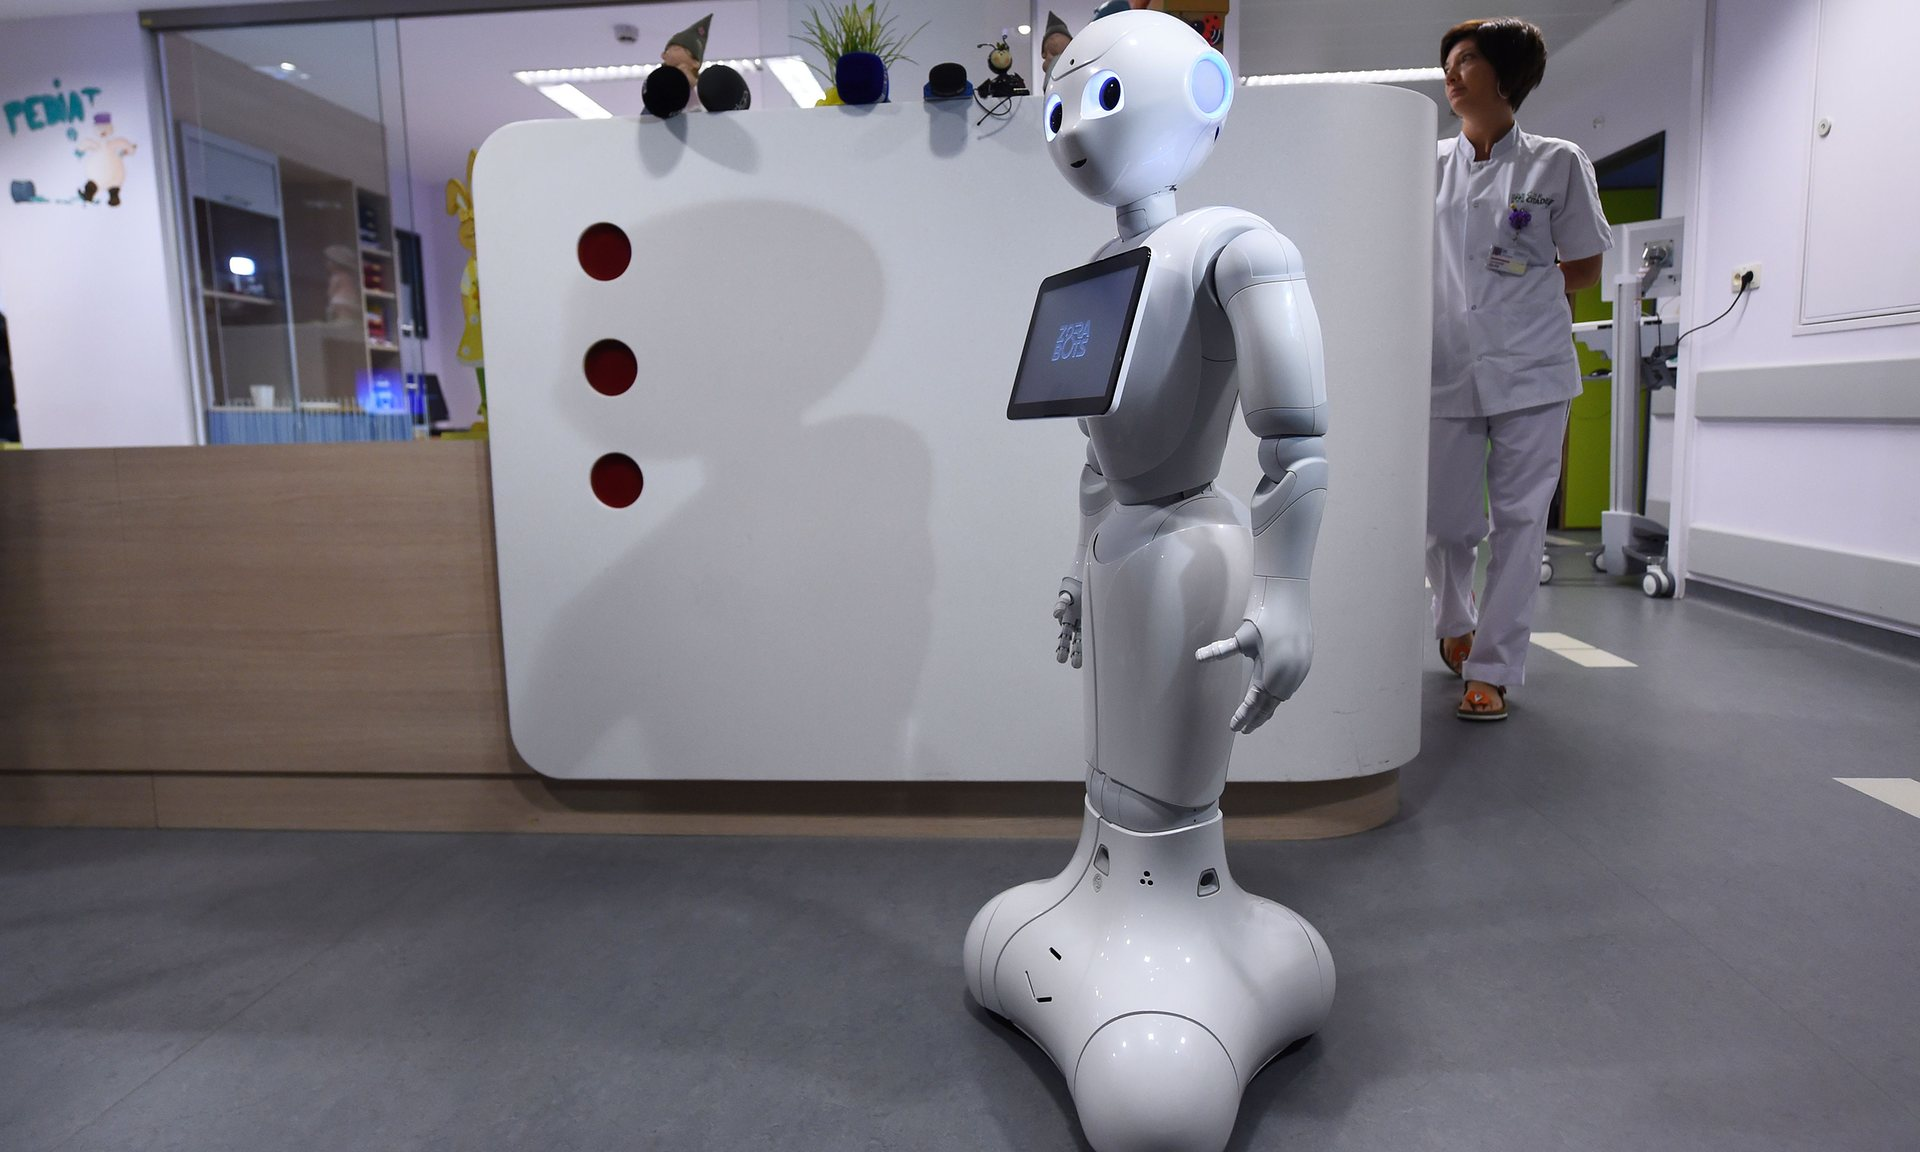 Pepper was adapted to support reception teams. Photograph: John Thys/AFP/Getty Images